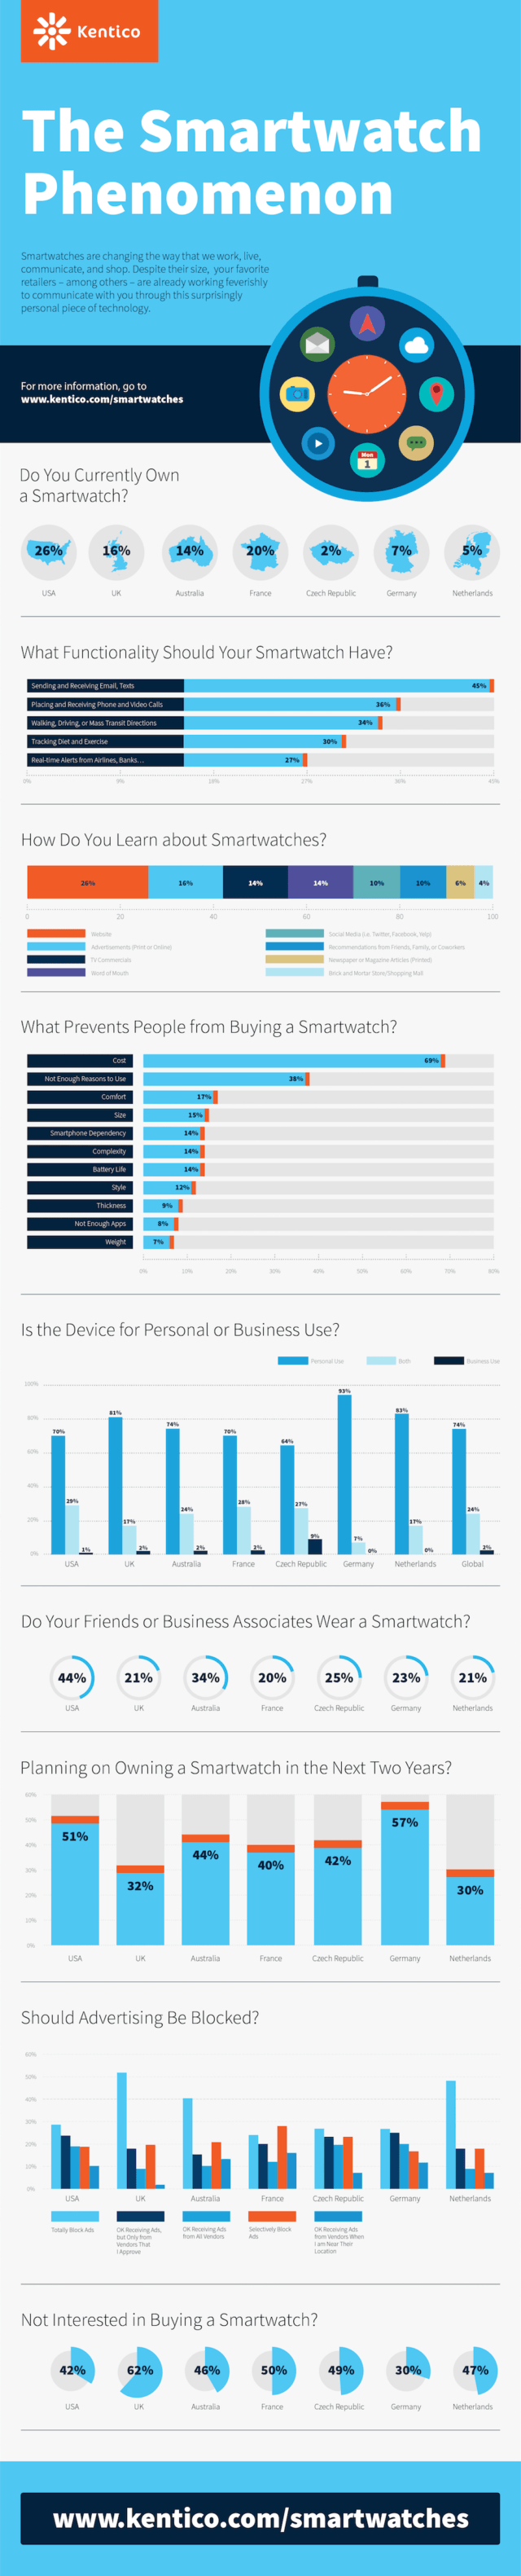 Smartwatch Adoption Research from Kentico